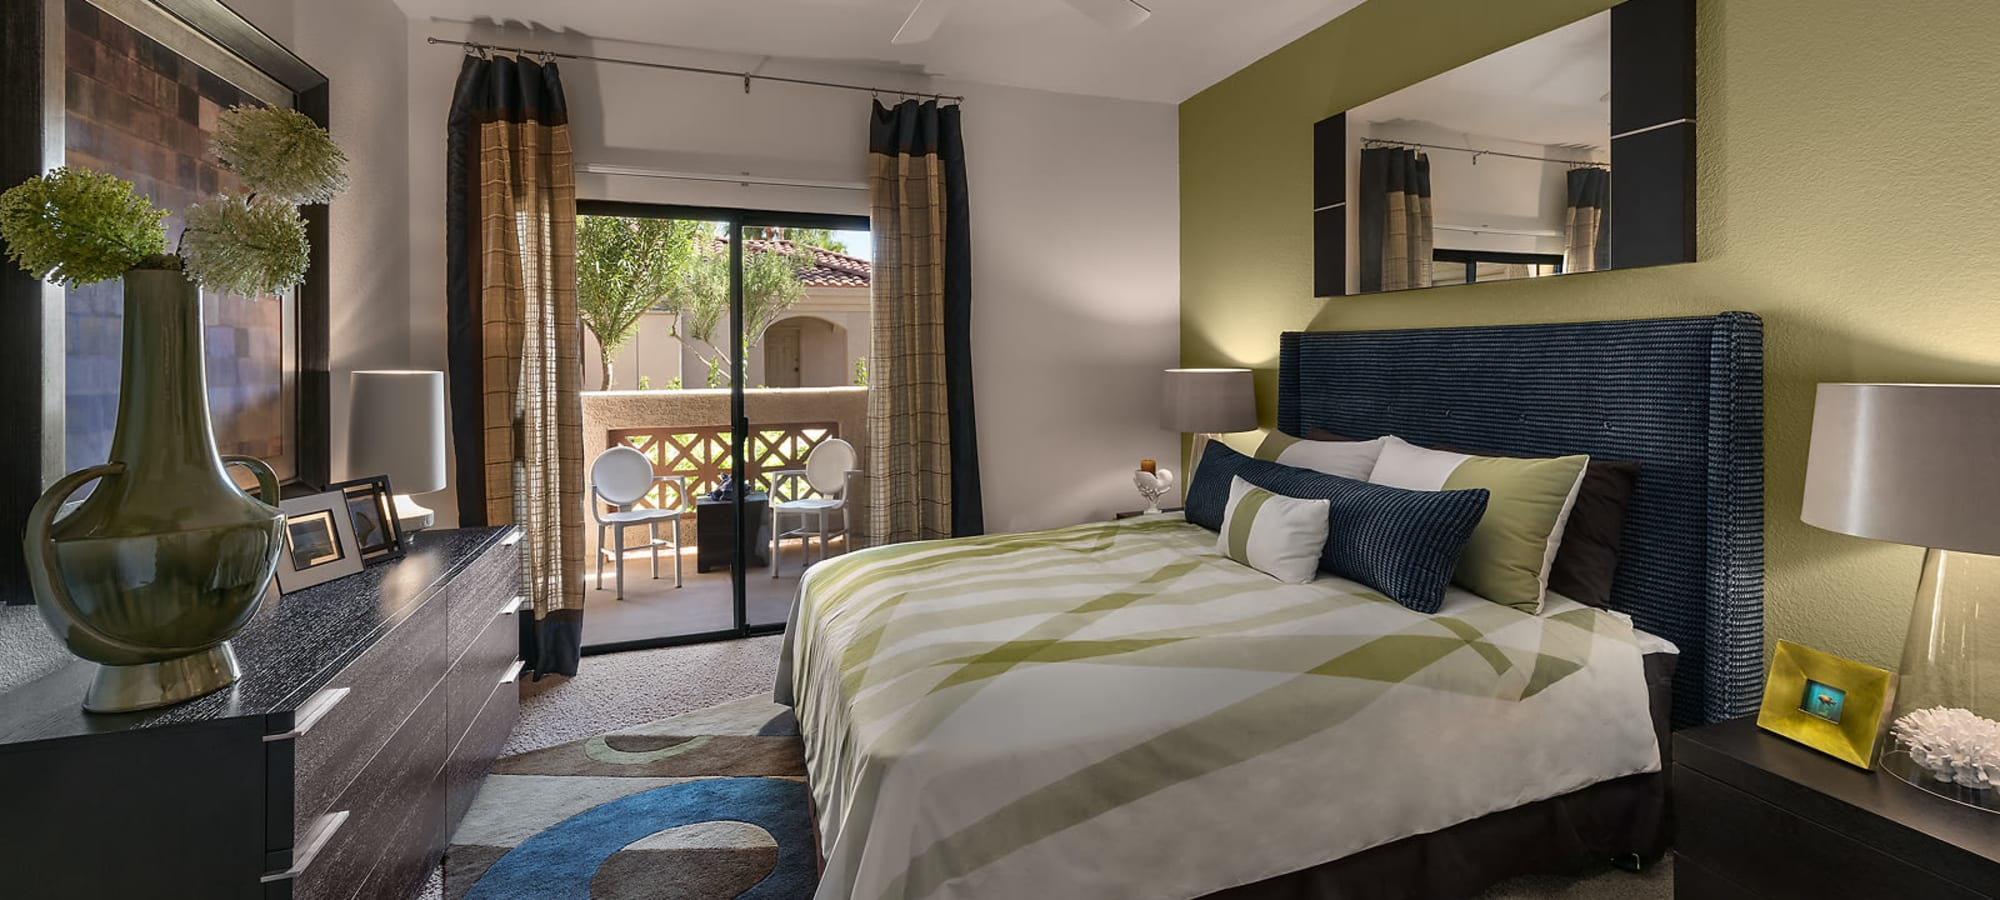 Master bedroom with patio access in a model home at San Pedregal in Phoenix, Arizona